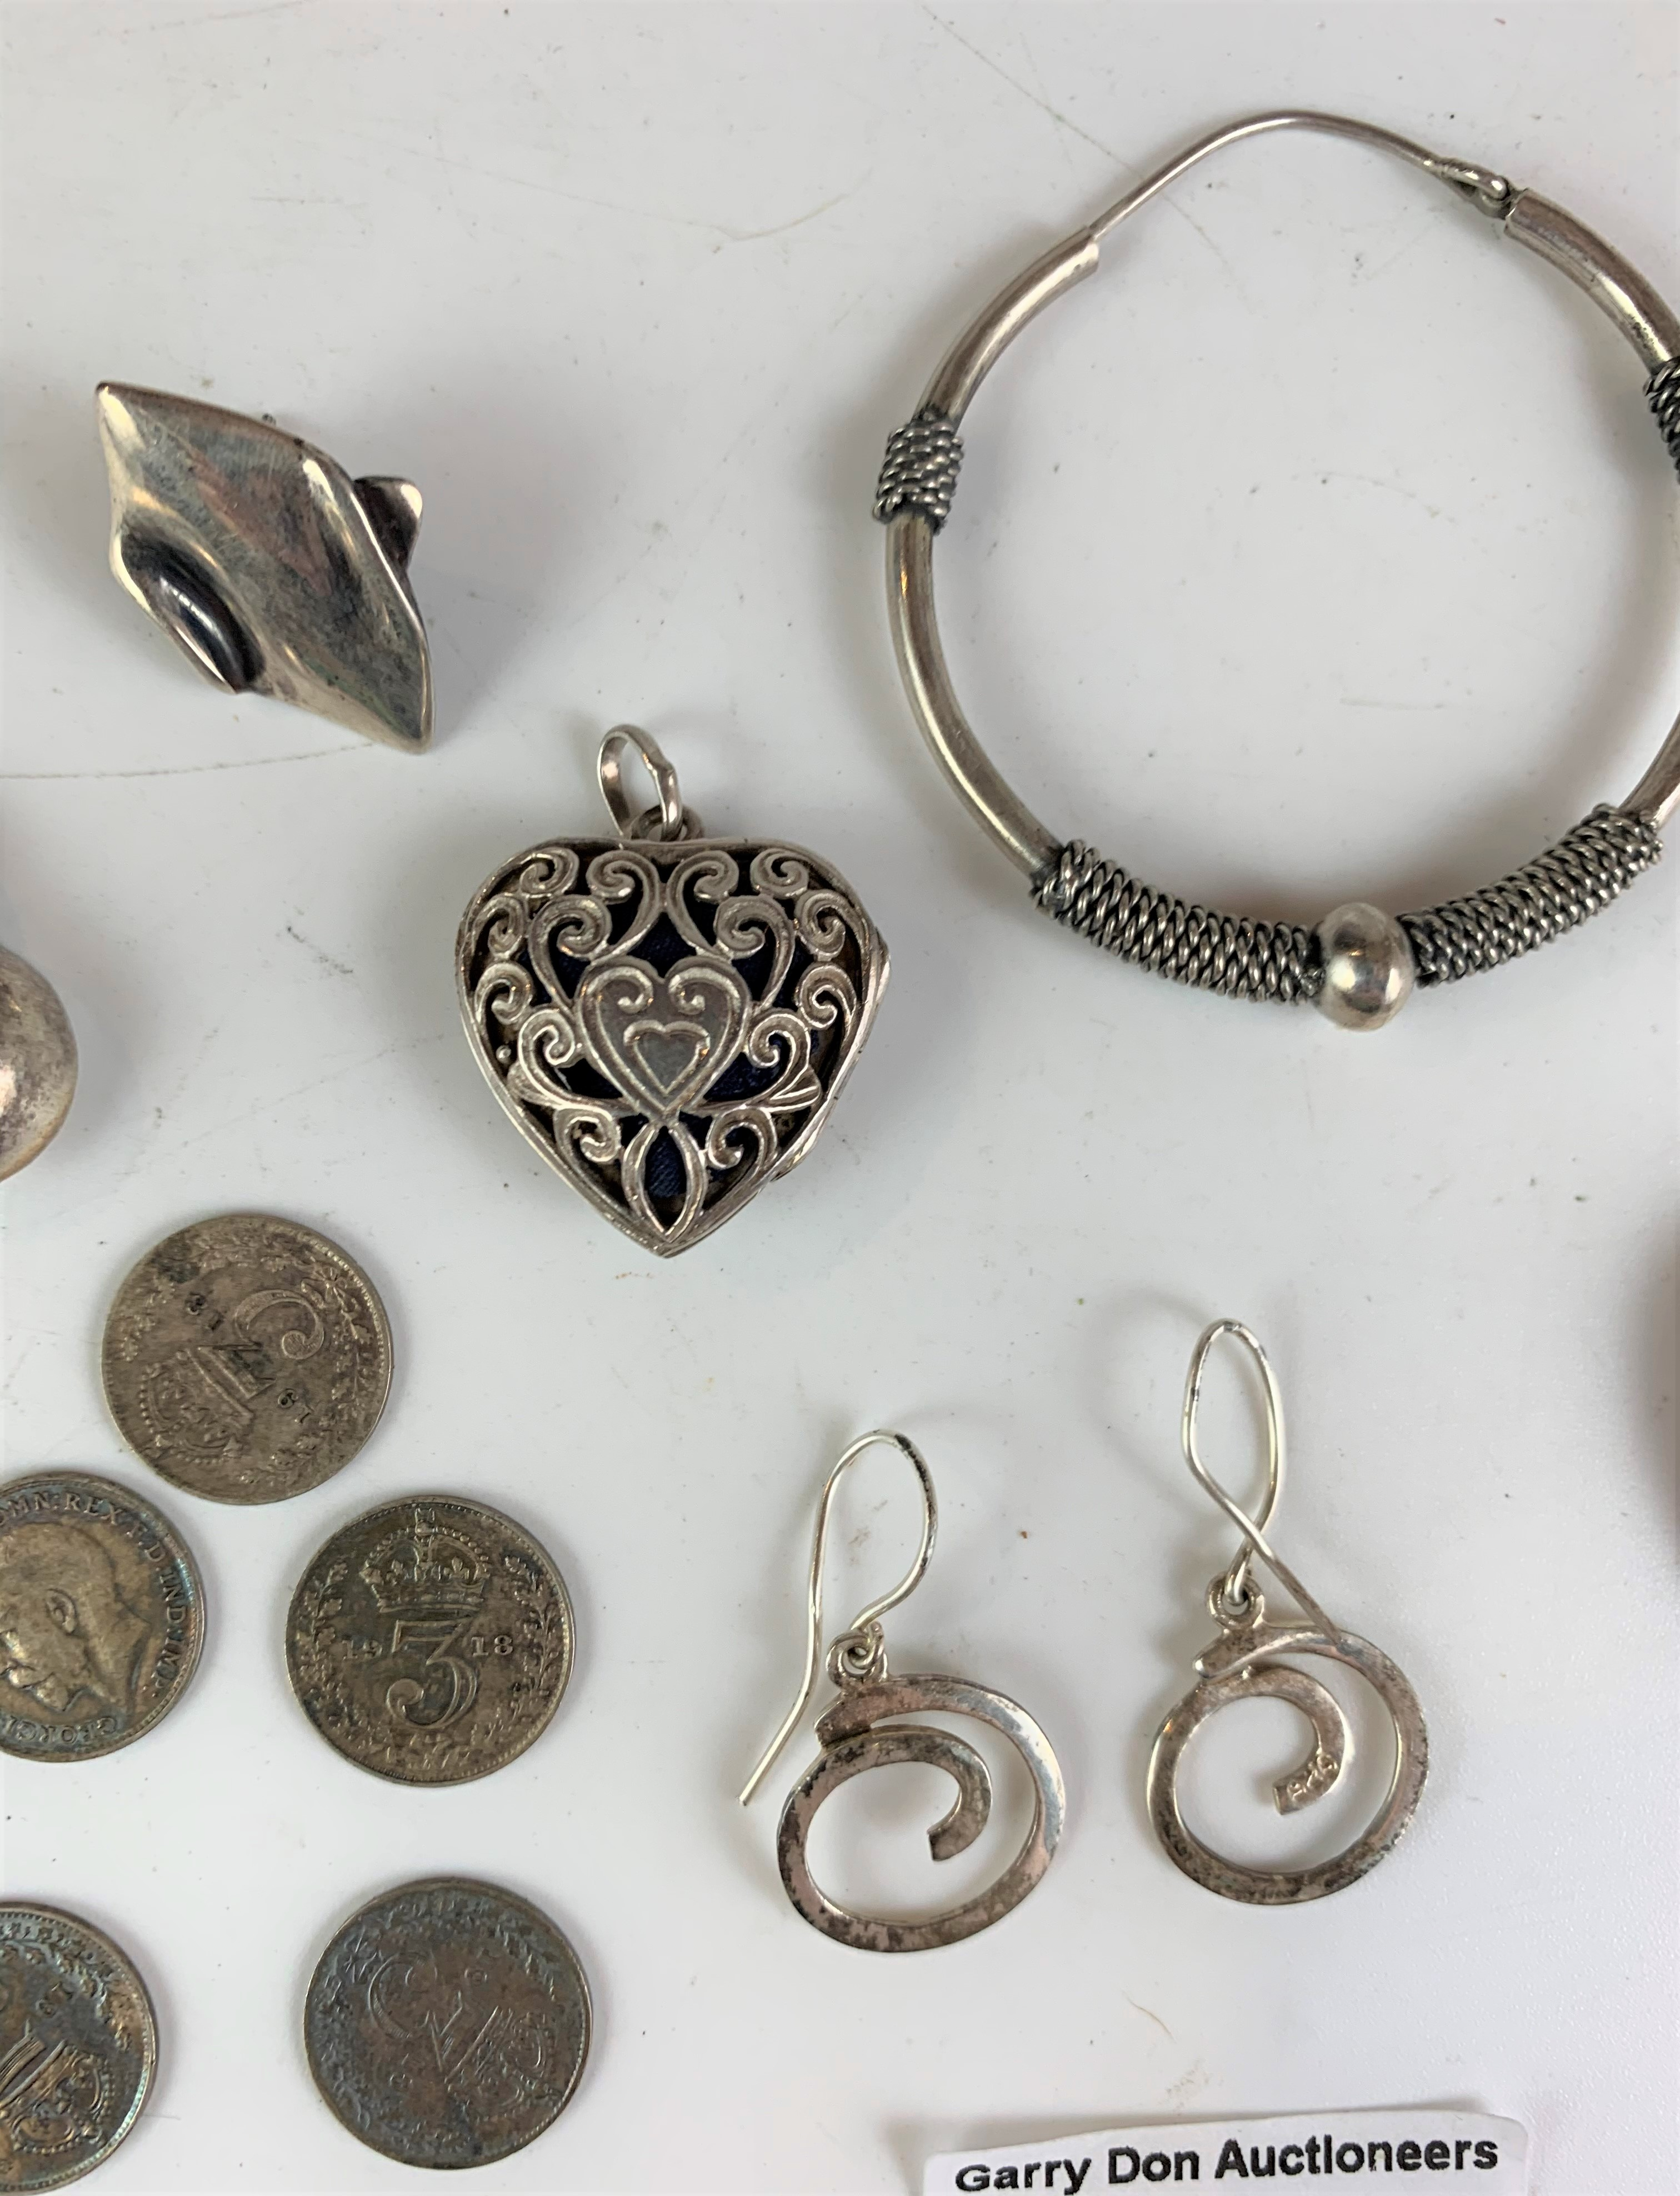 Assorted silver jewellery and coins, total w: 1.3 ozt - Image 4 of 5